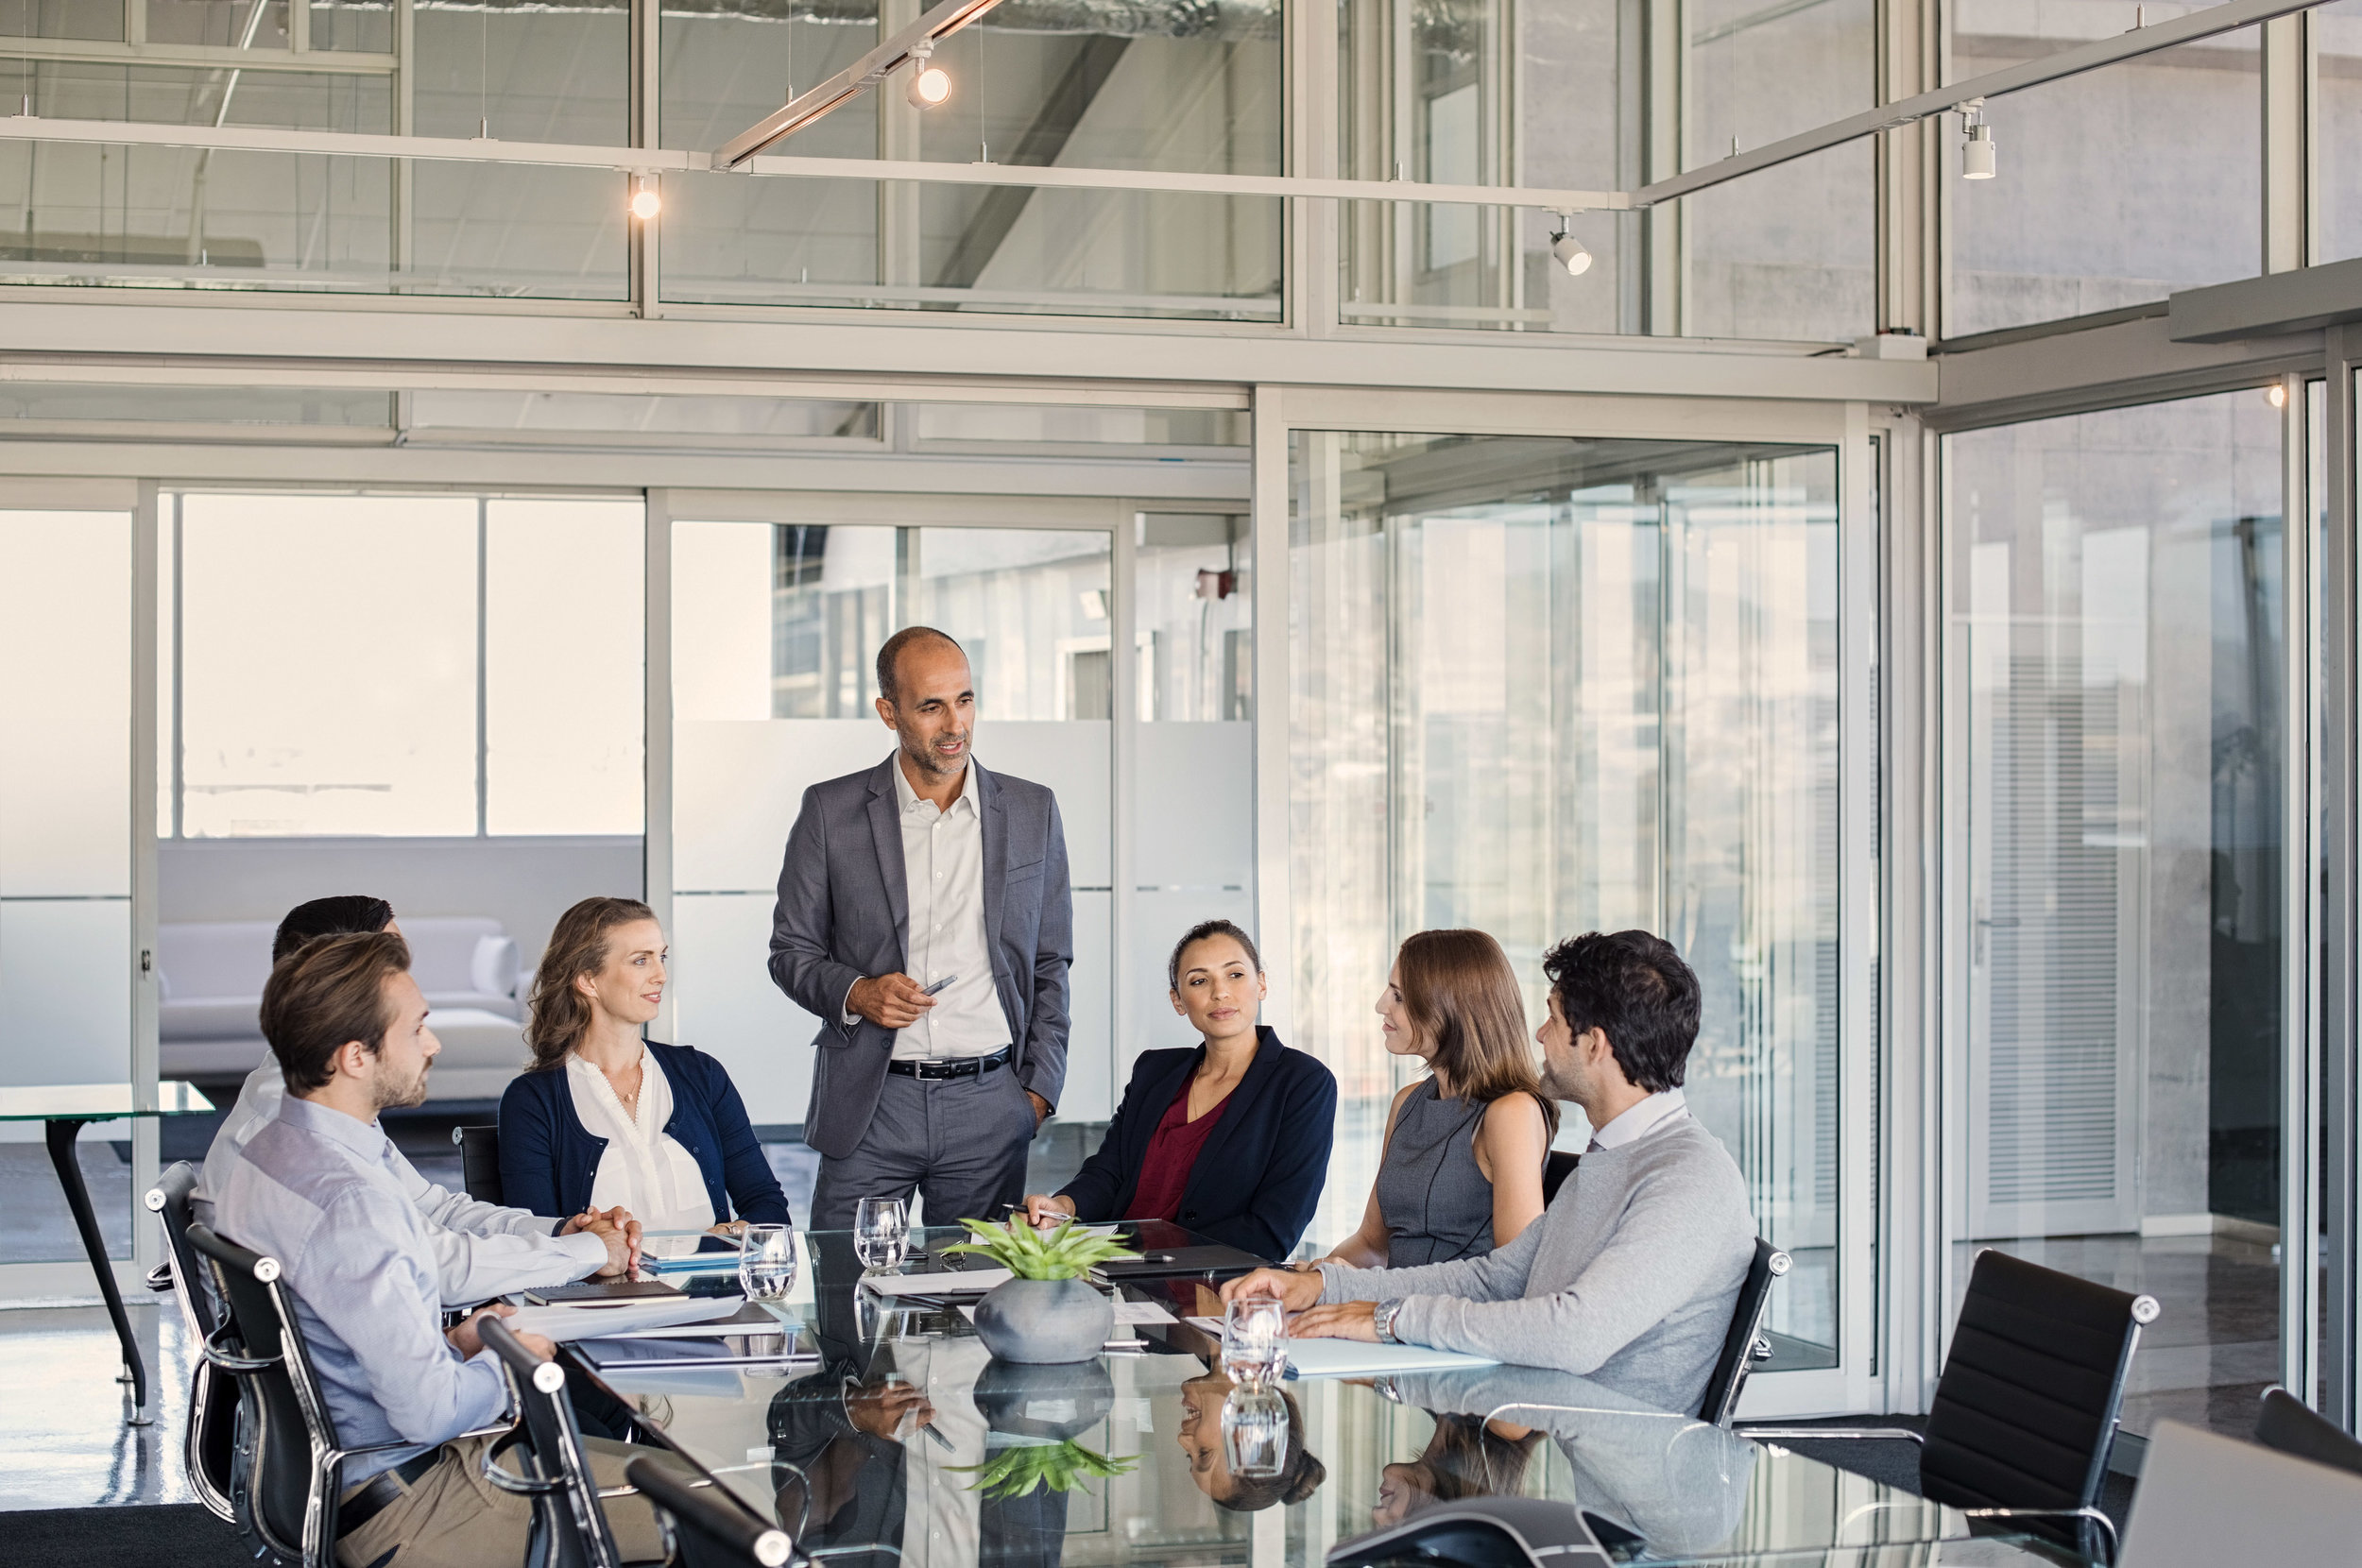 Executive Roundtables - Our expert-led peer advisory groups bring together business leaders in a safe, confidential environment once a month for support, education in thought-leader best practices and strategic problem solving.